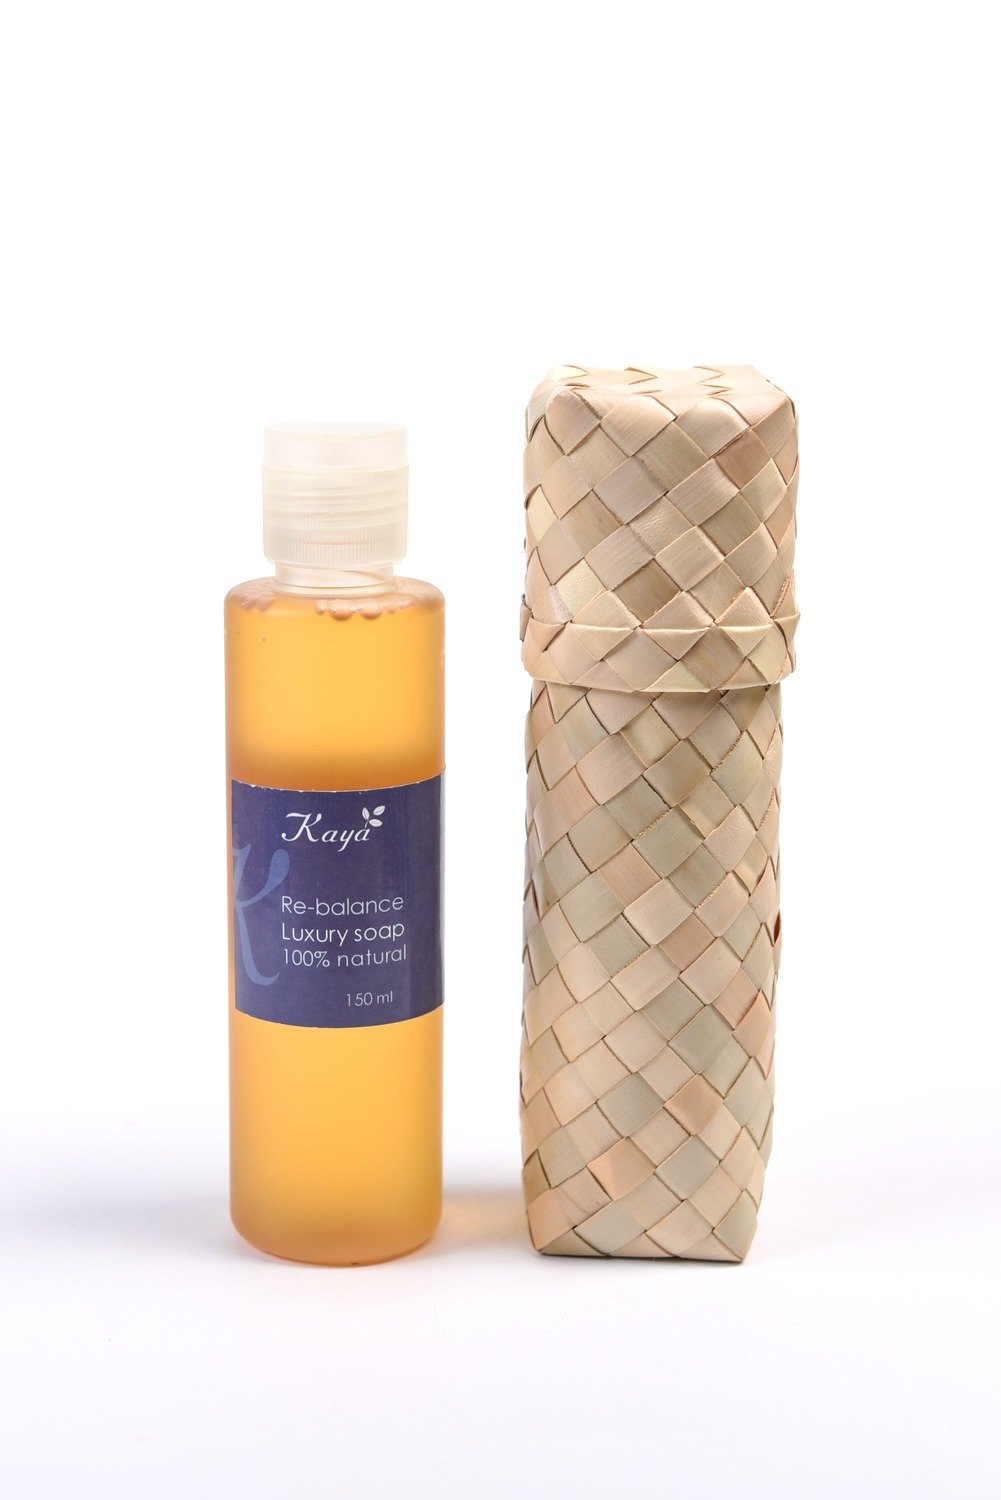 Re-Balance Liquid Soap, 100 % Natural